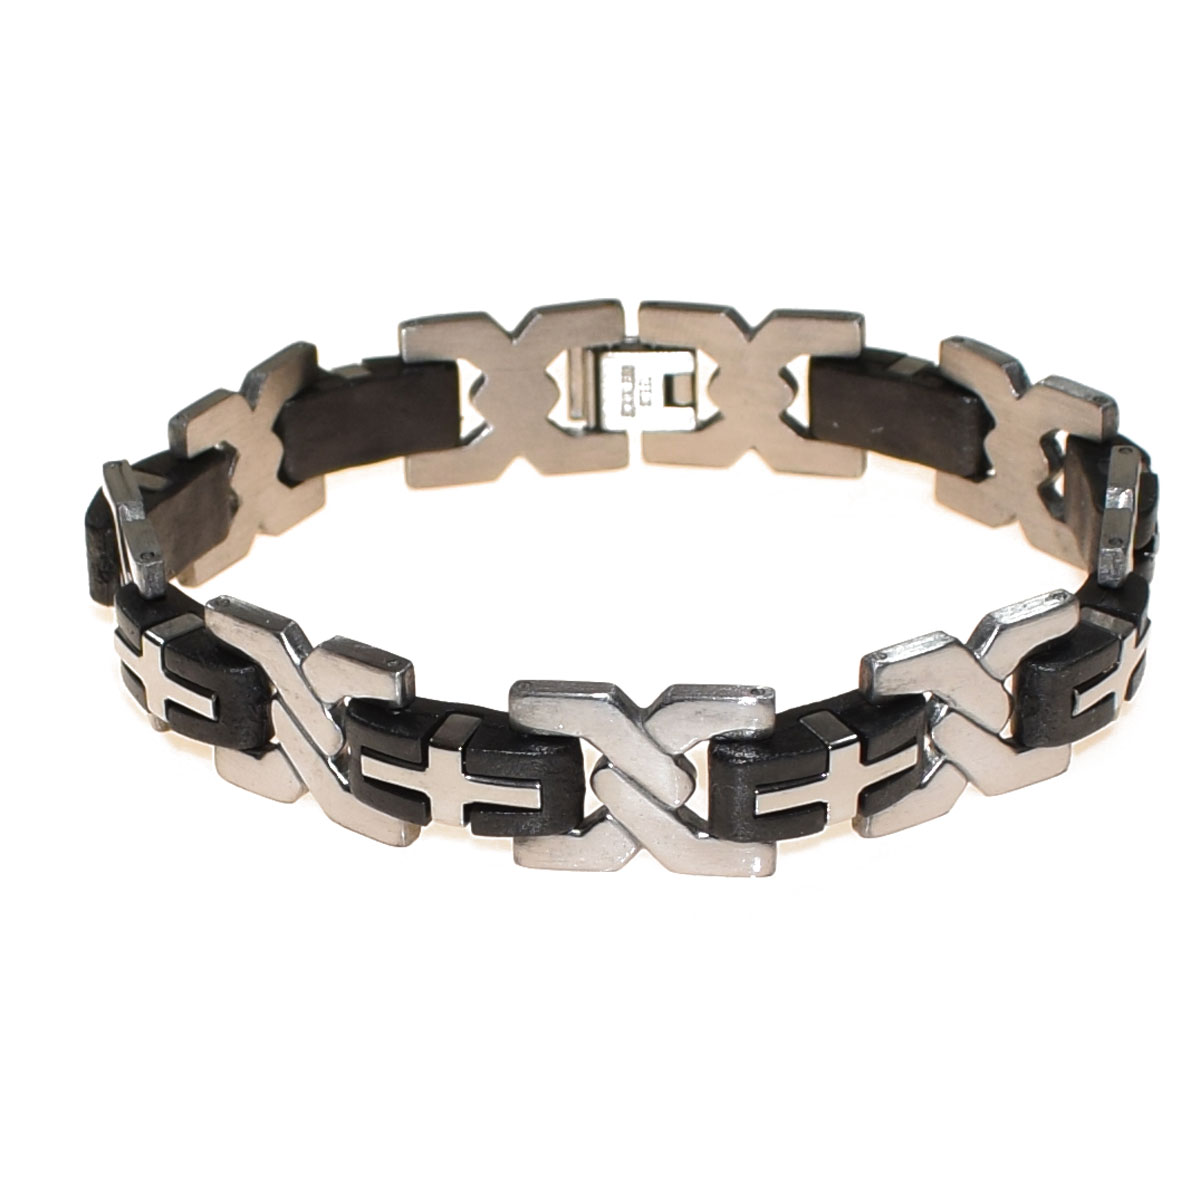 Bracelet Mens Stainless Steel In Silver Color With Black Rubber Bz Br 00260